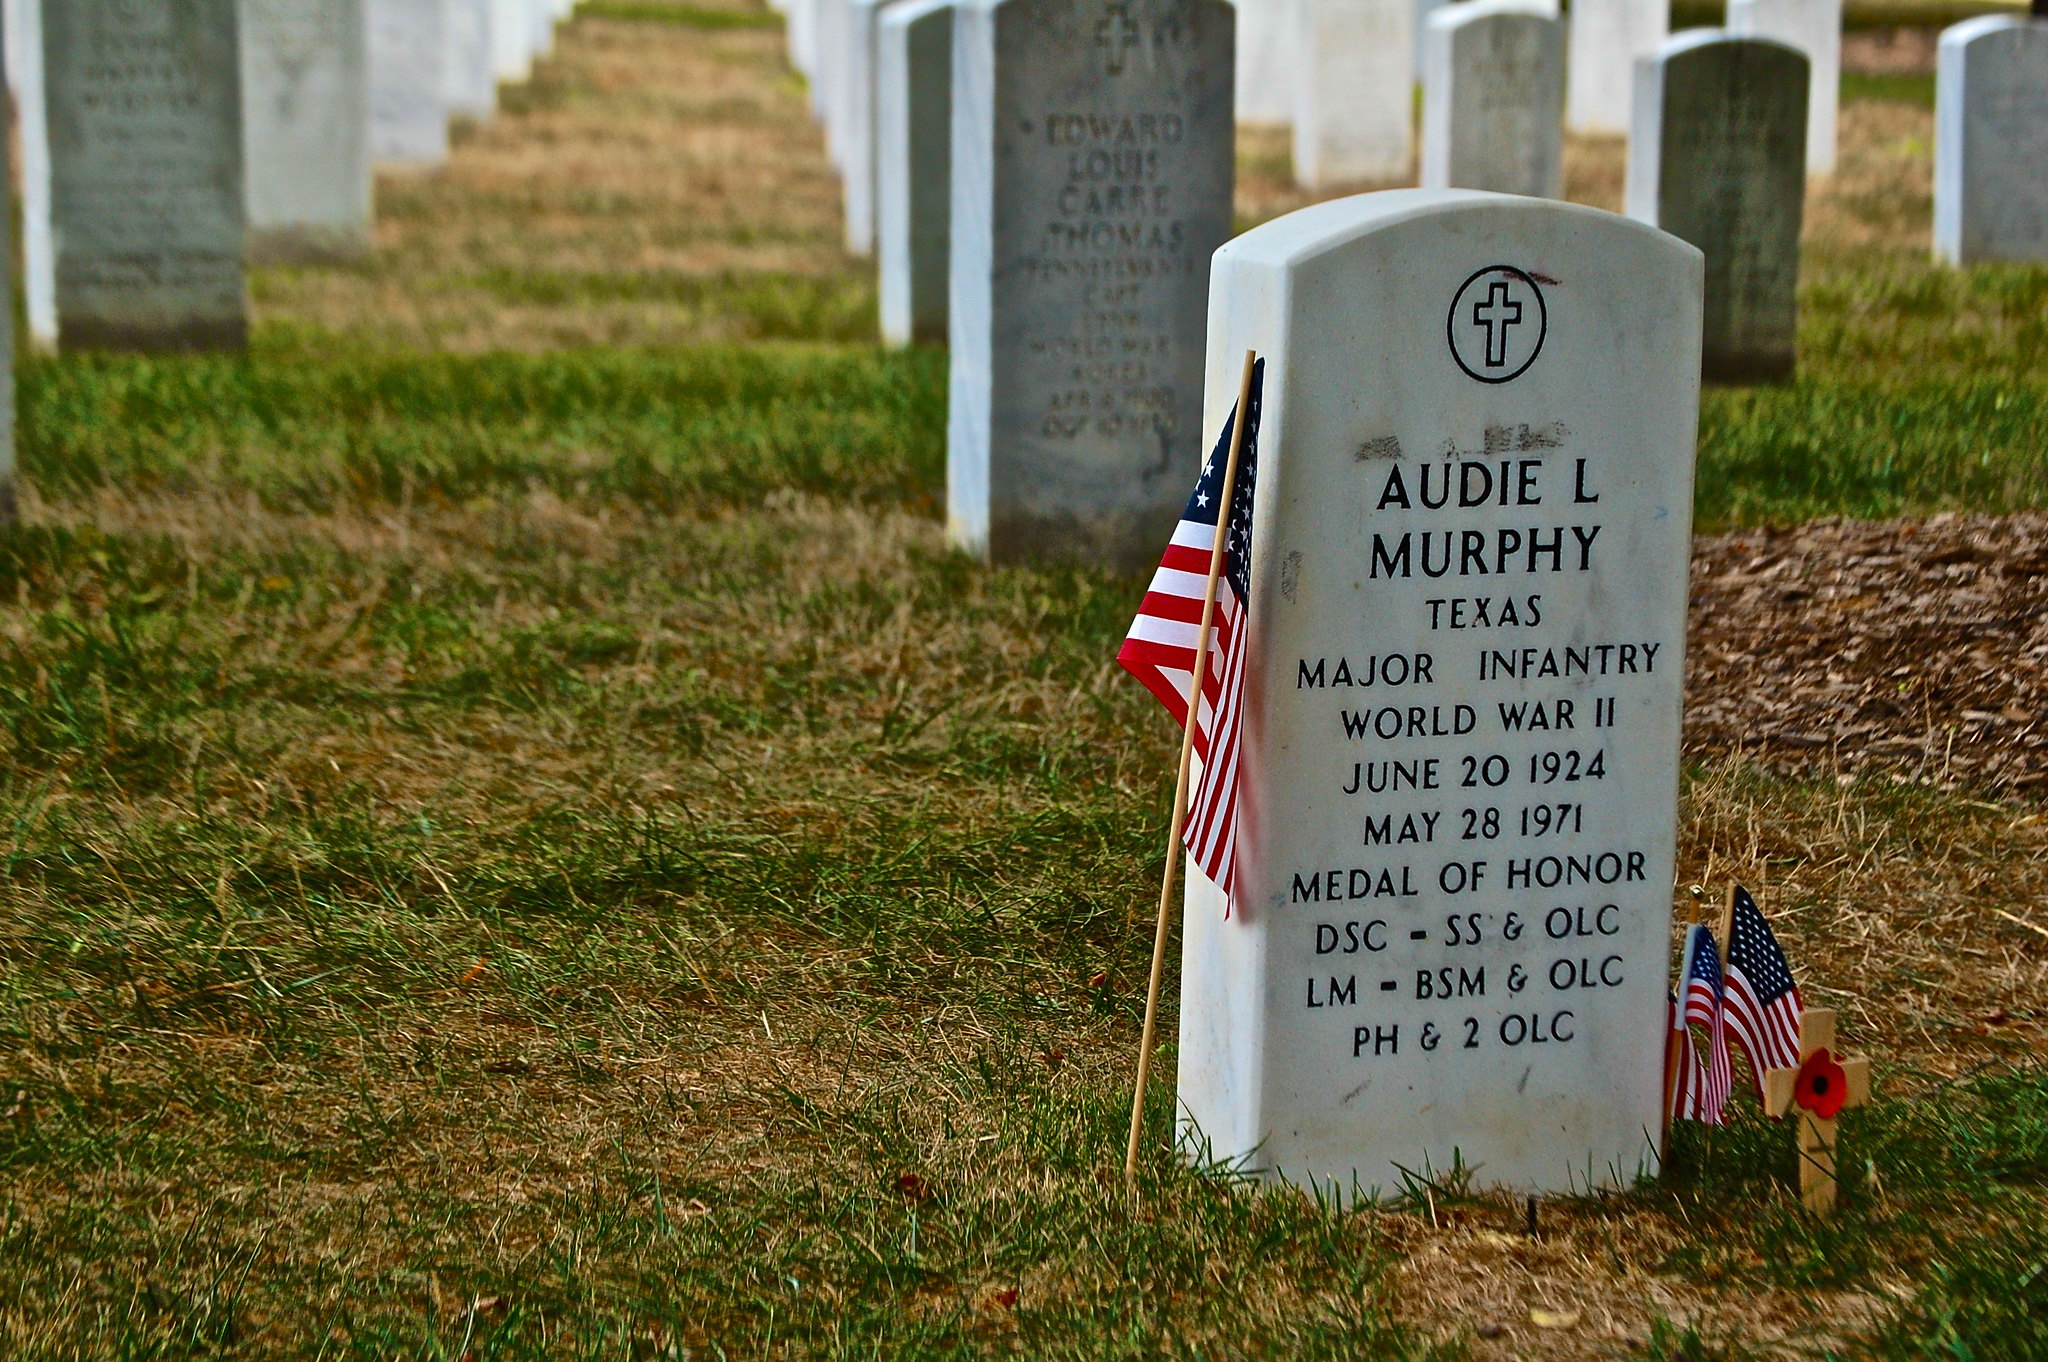 Gravestone of actor and World War II hero Audie Murphy